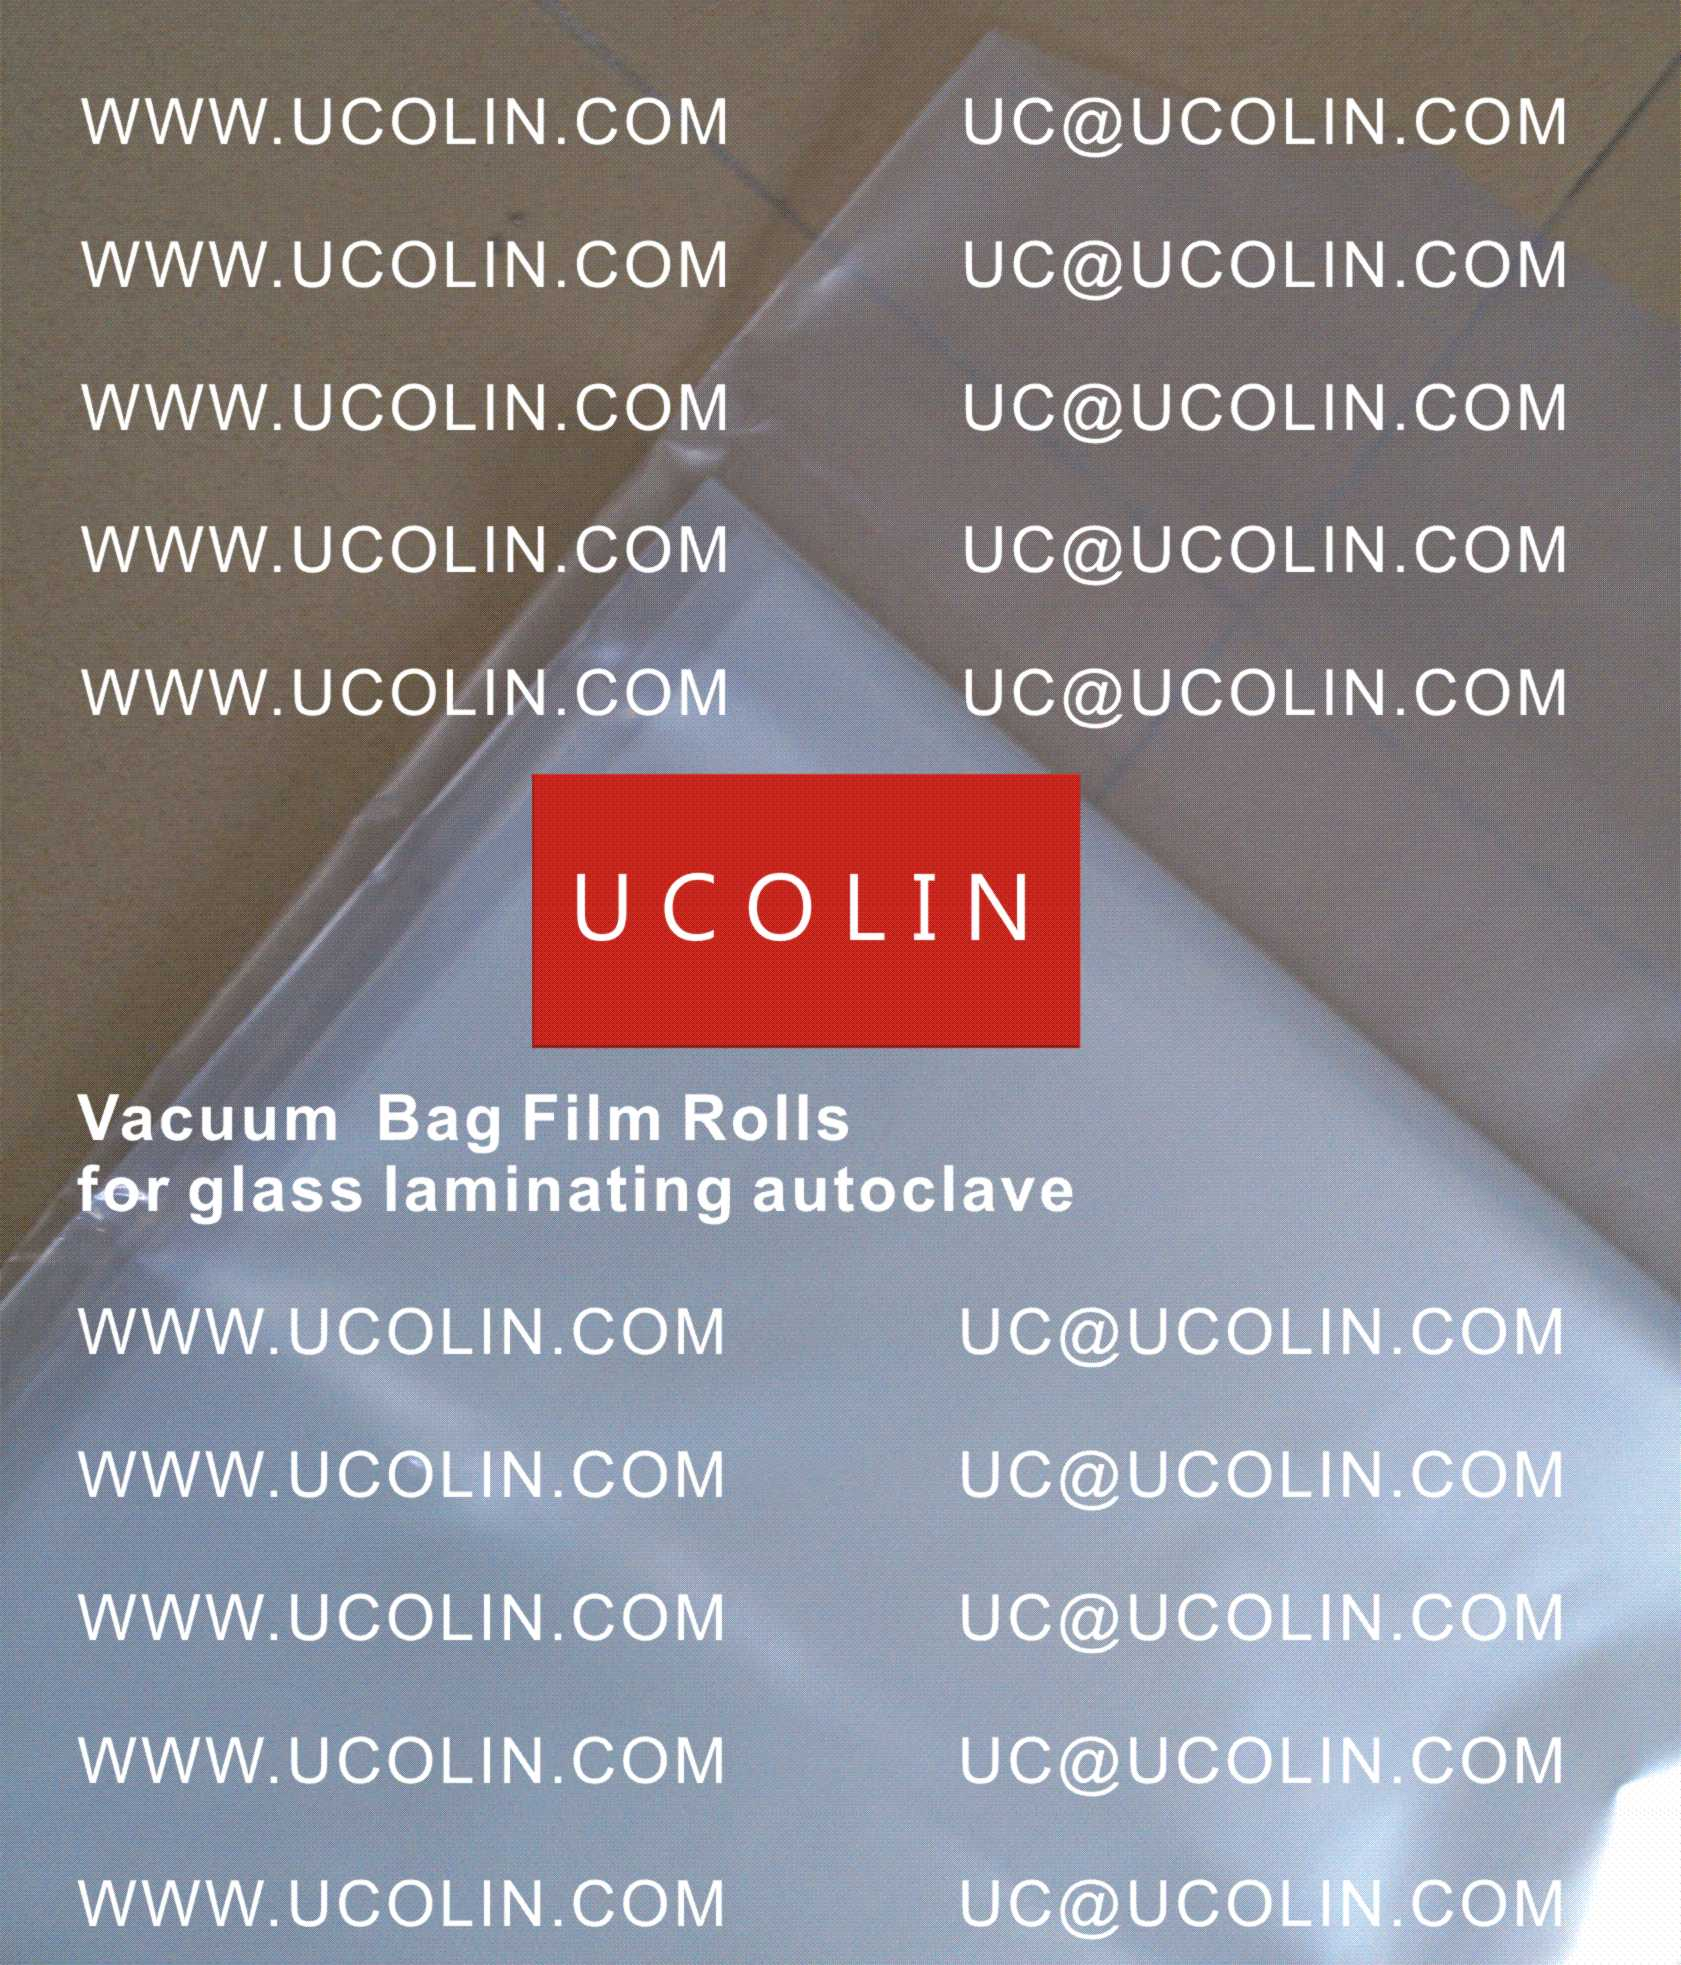 007 Vacuum Bag Film Rolls for Laminating Curved Glass in Autoclave